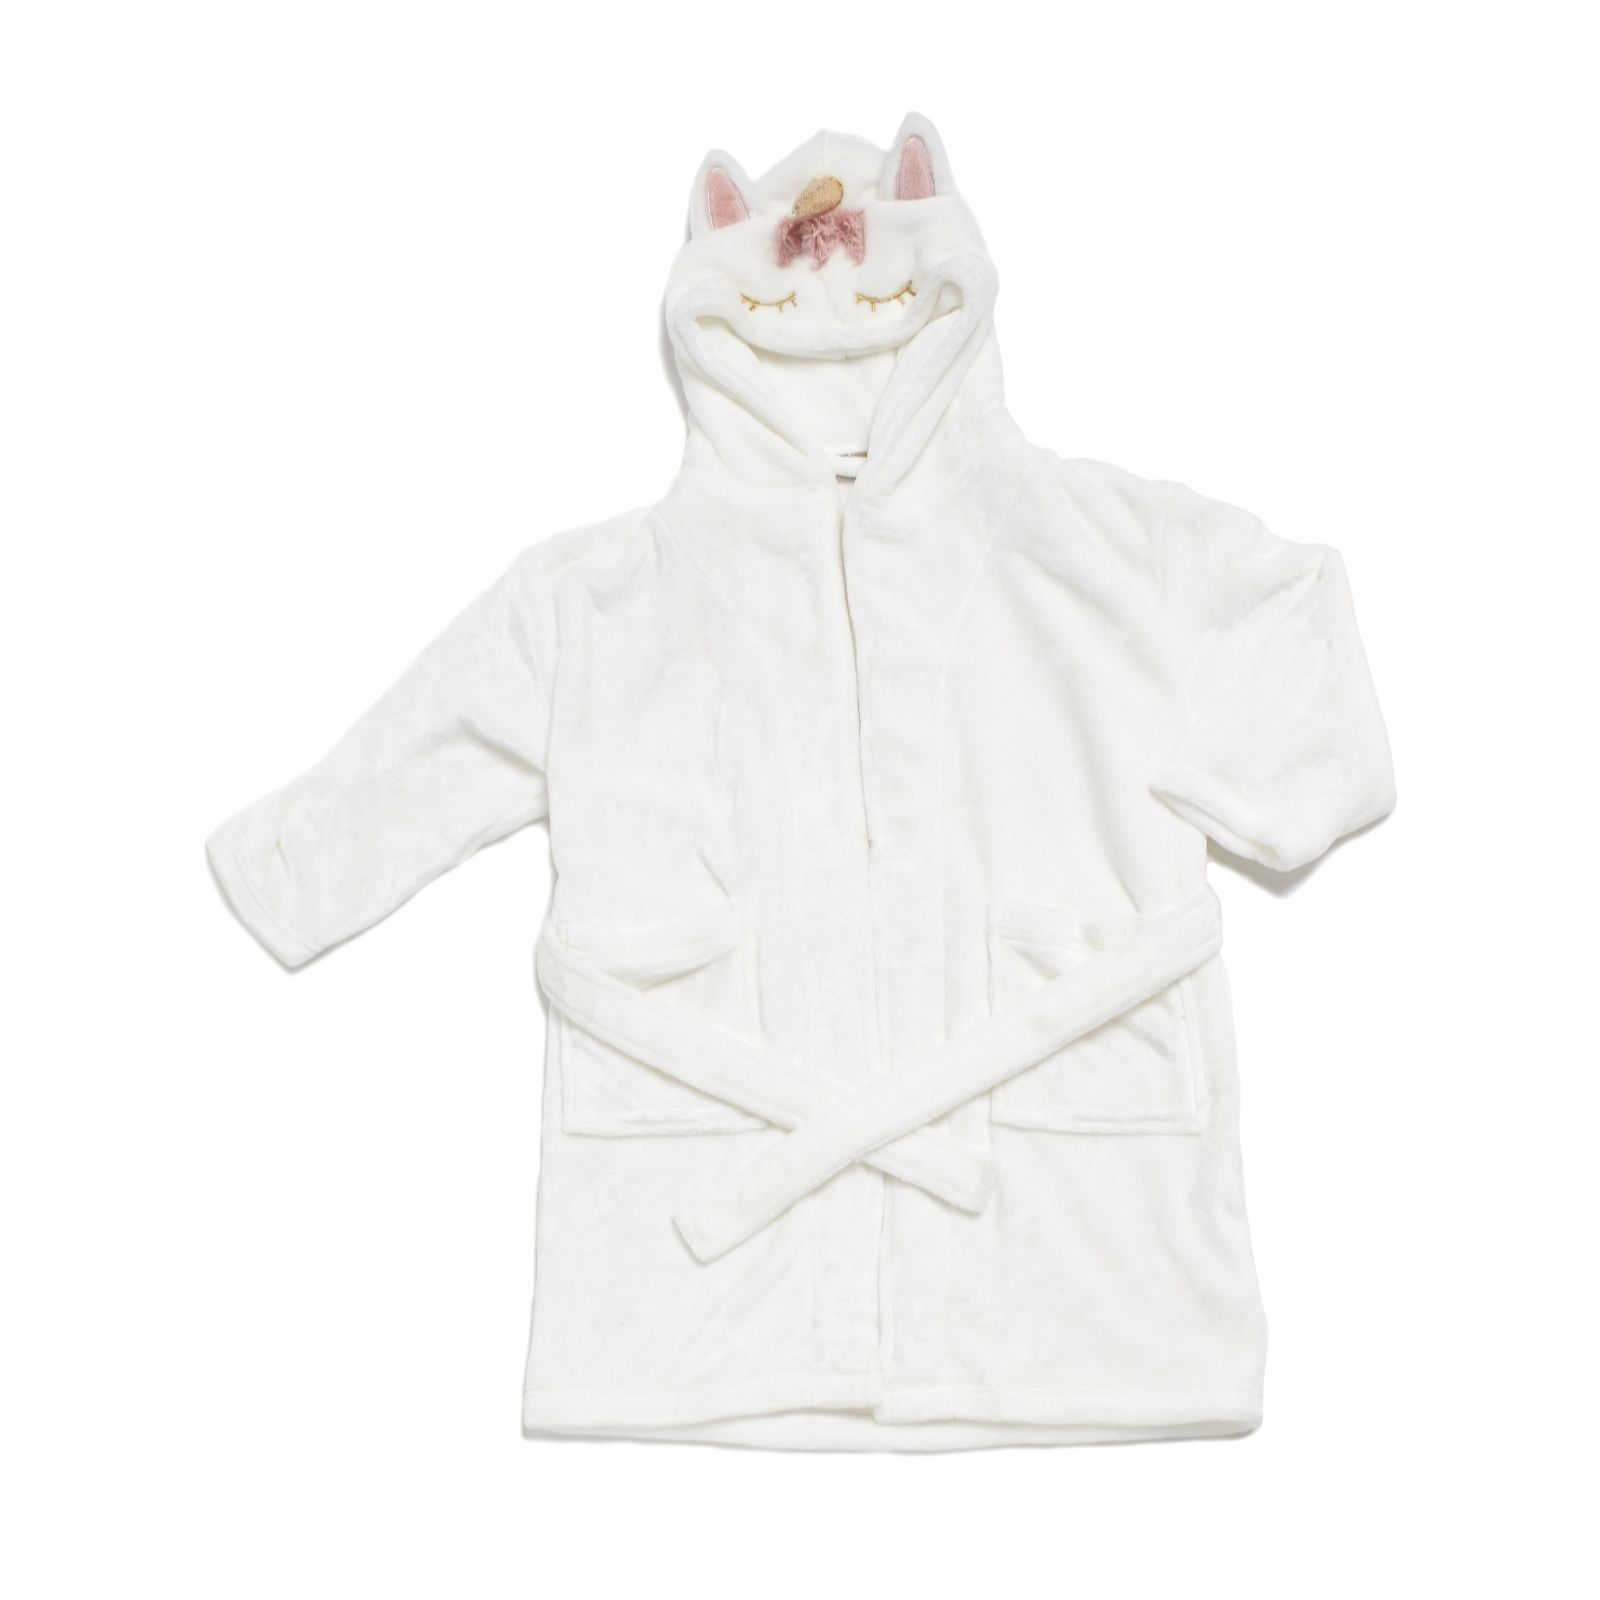 Cozee Home Children/'s Hooded Robe Various Sizes Dressing Gown Grey Cat